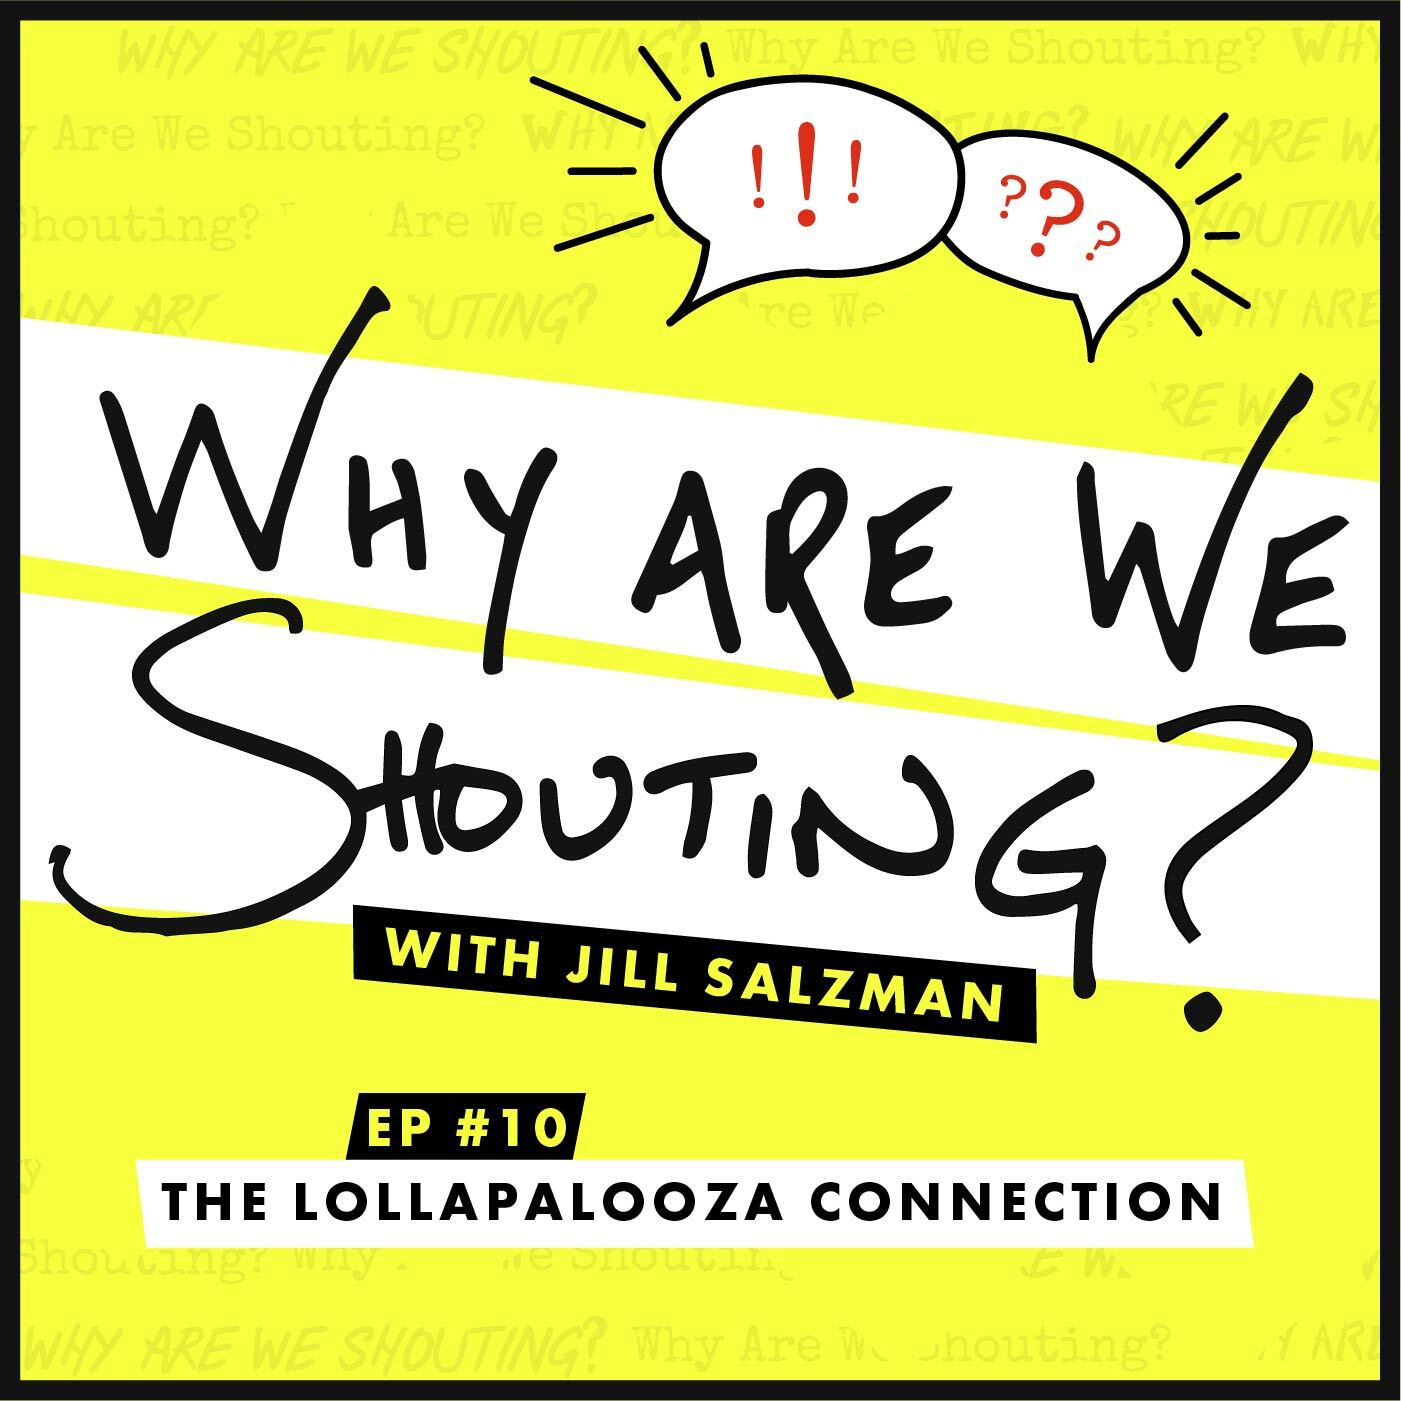 The Lollapalooza Connection